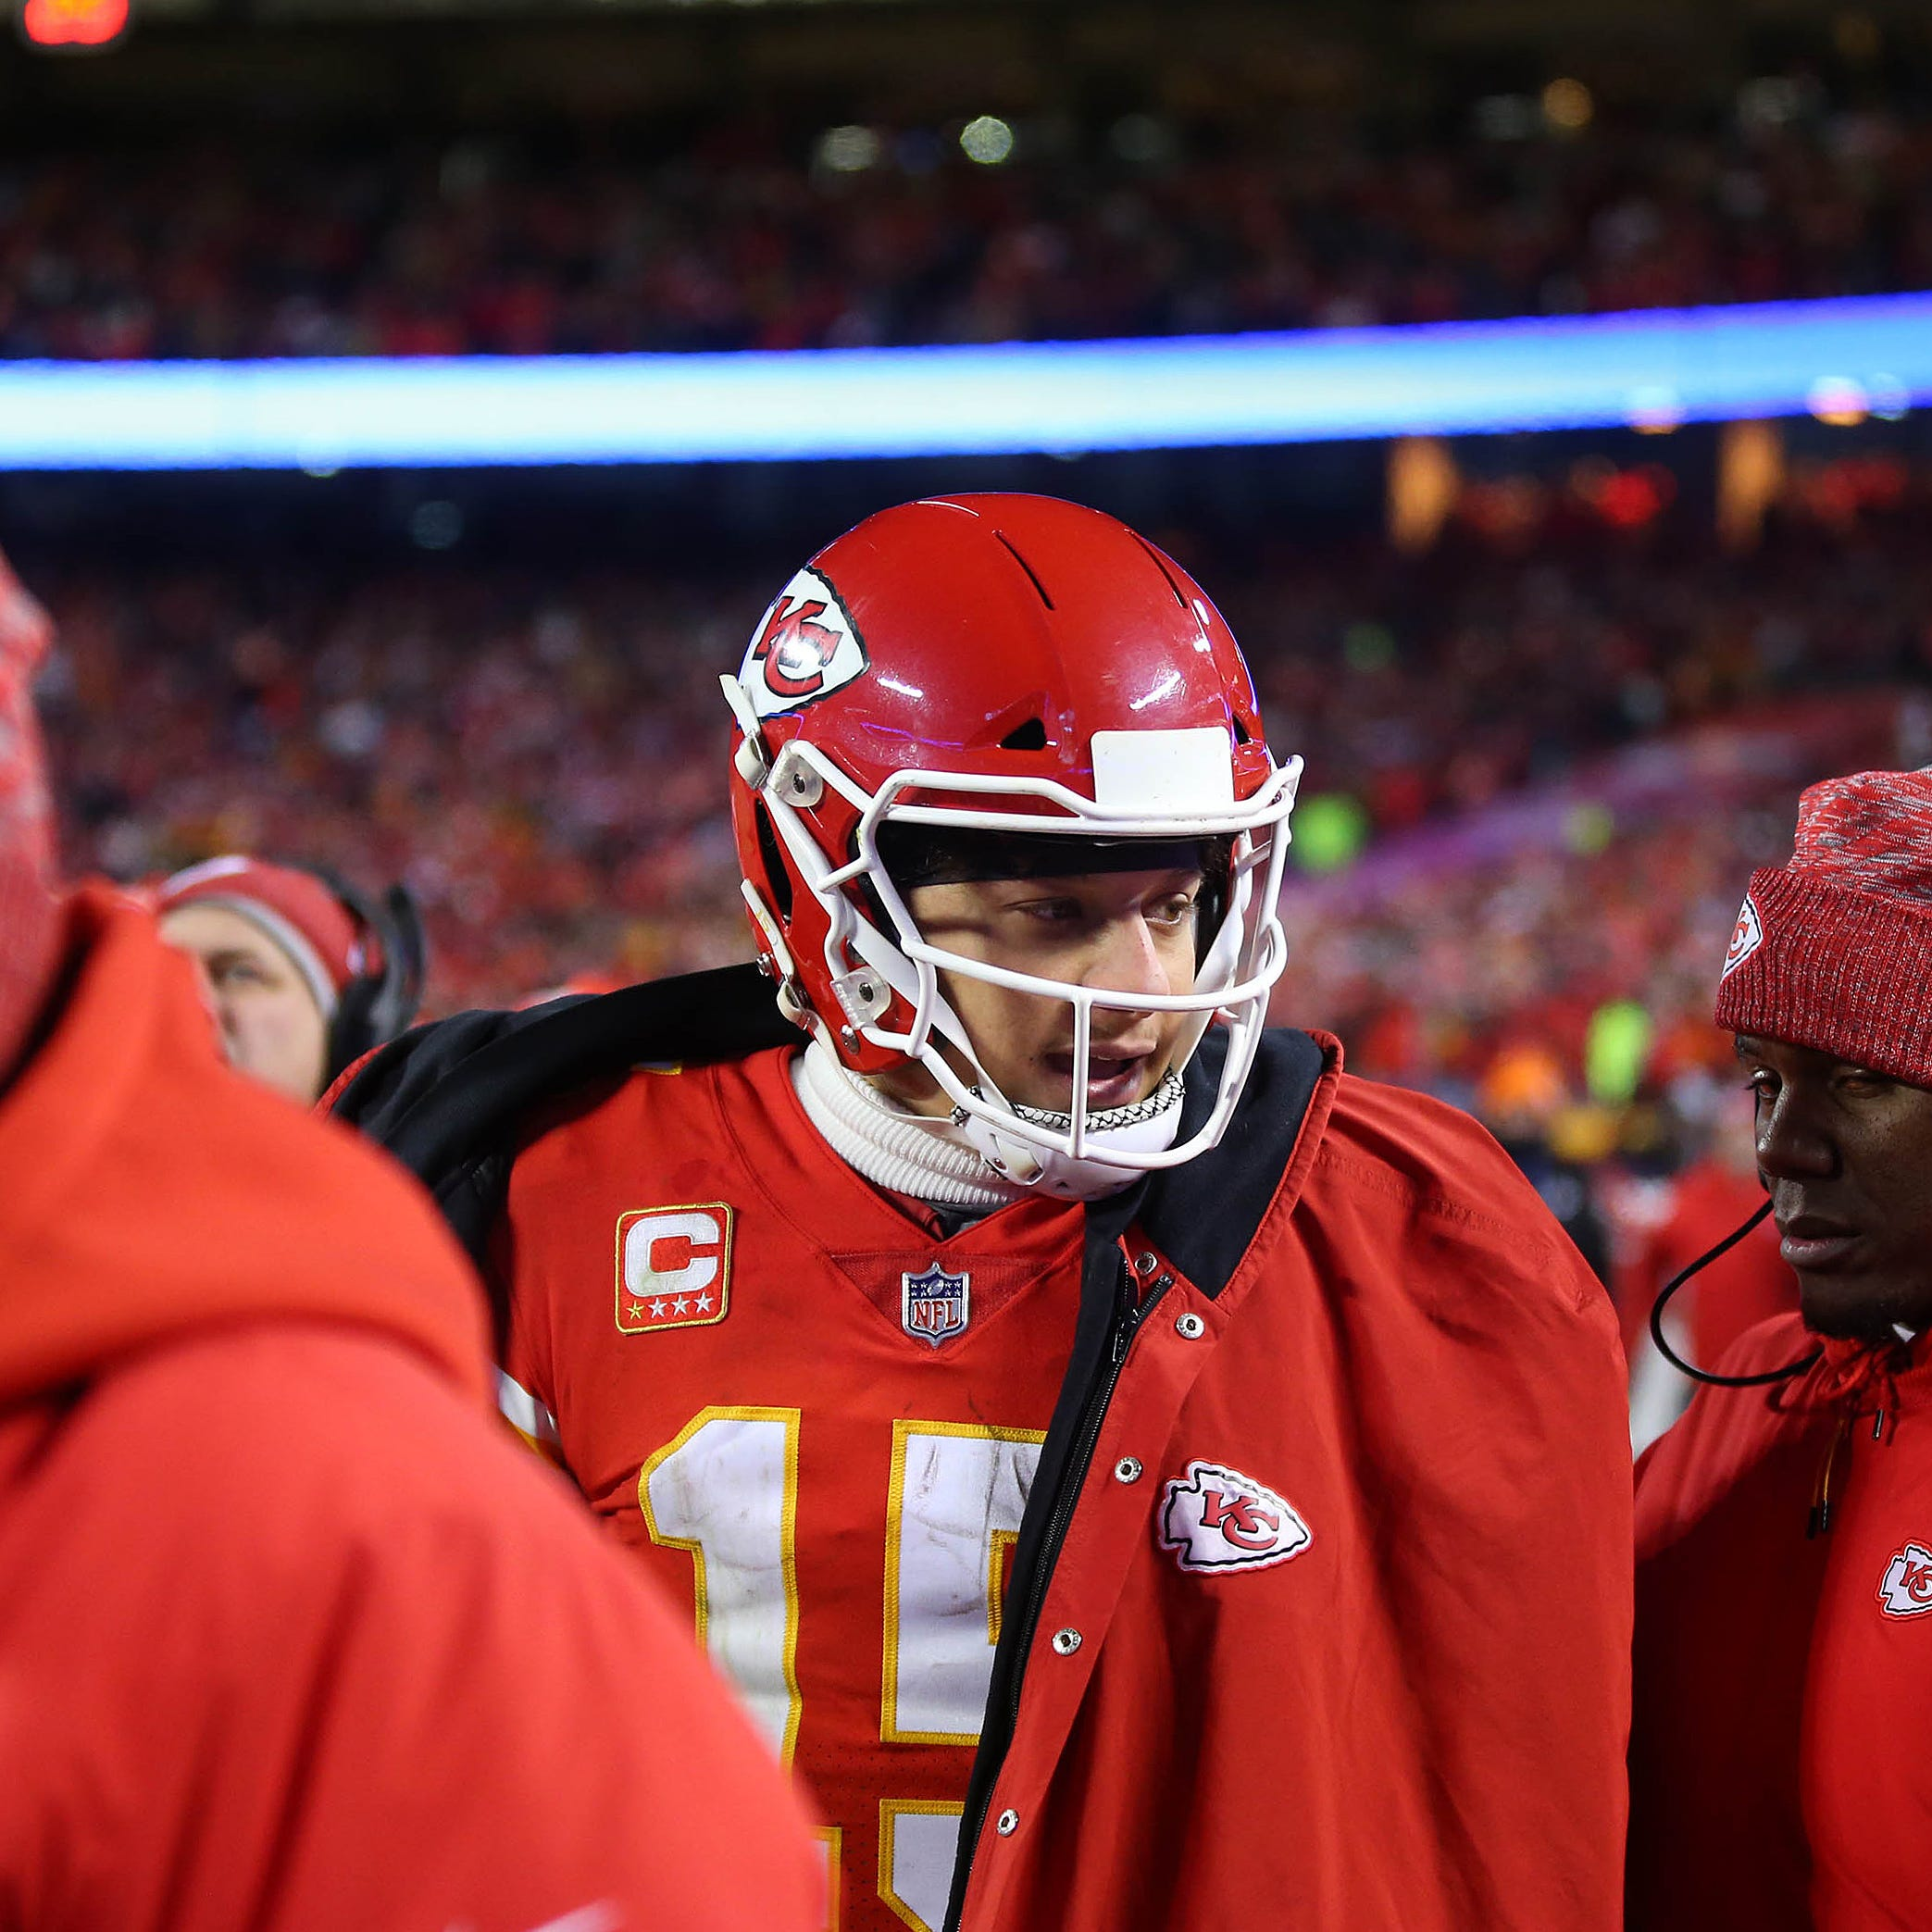 Patrick Mahomes looks on from the sidelines during the AFC Championship.